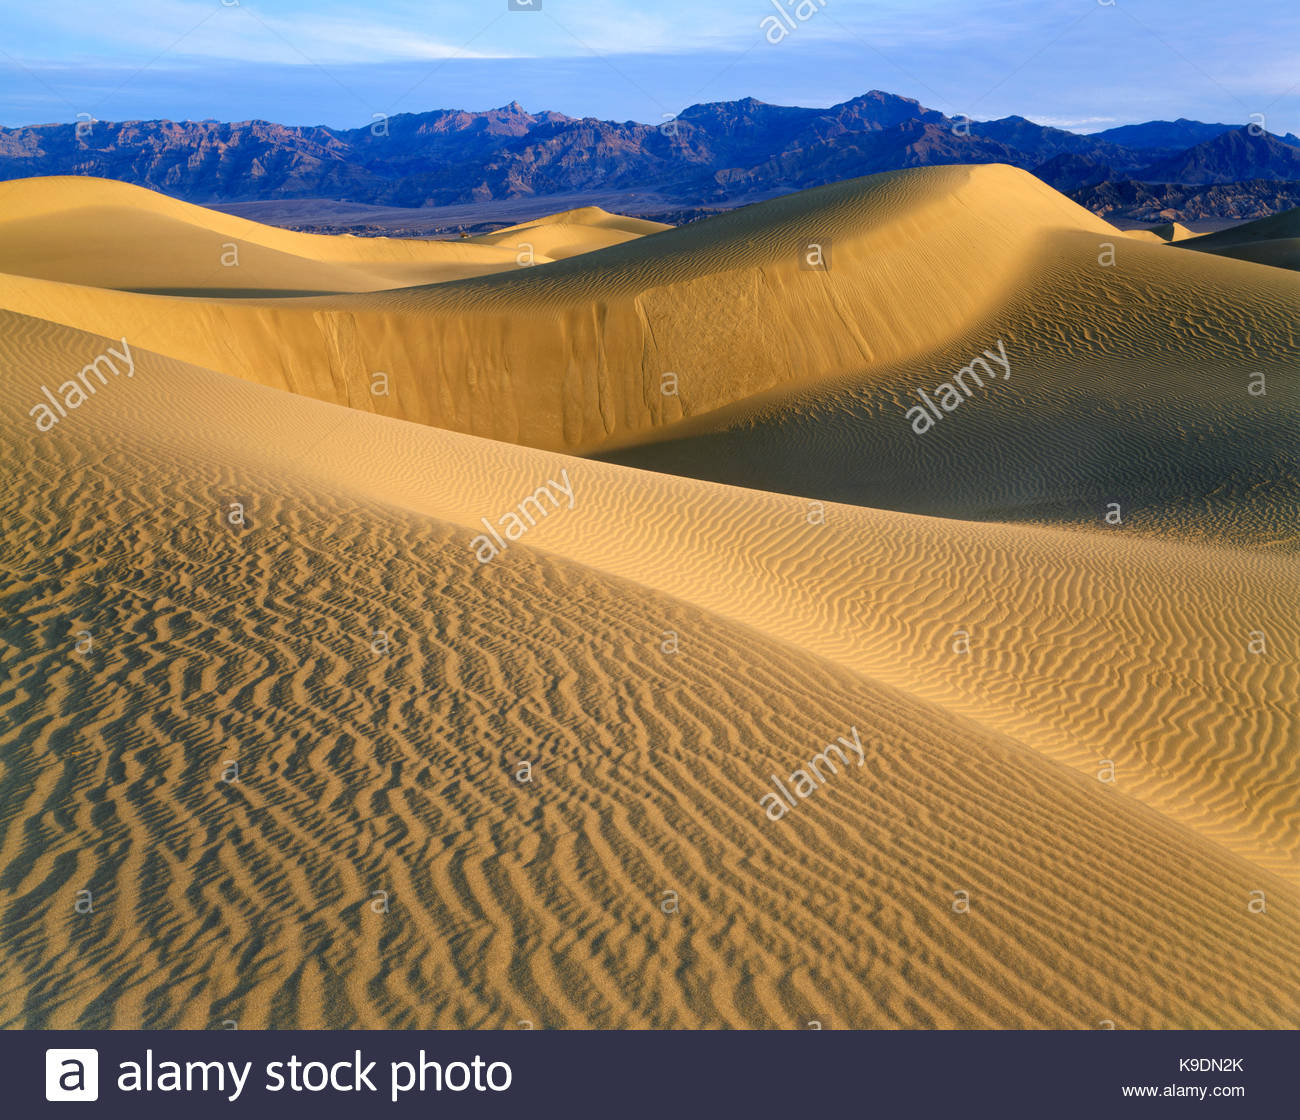 Sanddünen in der Nähe von Kaunas Flach, Death Valley National Park, Kalifornien Stockbild